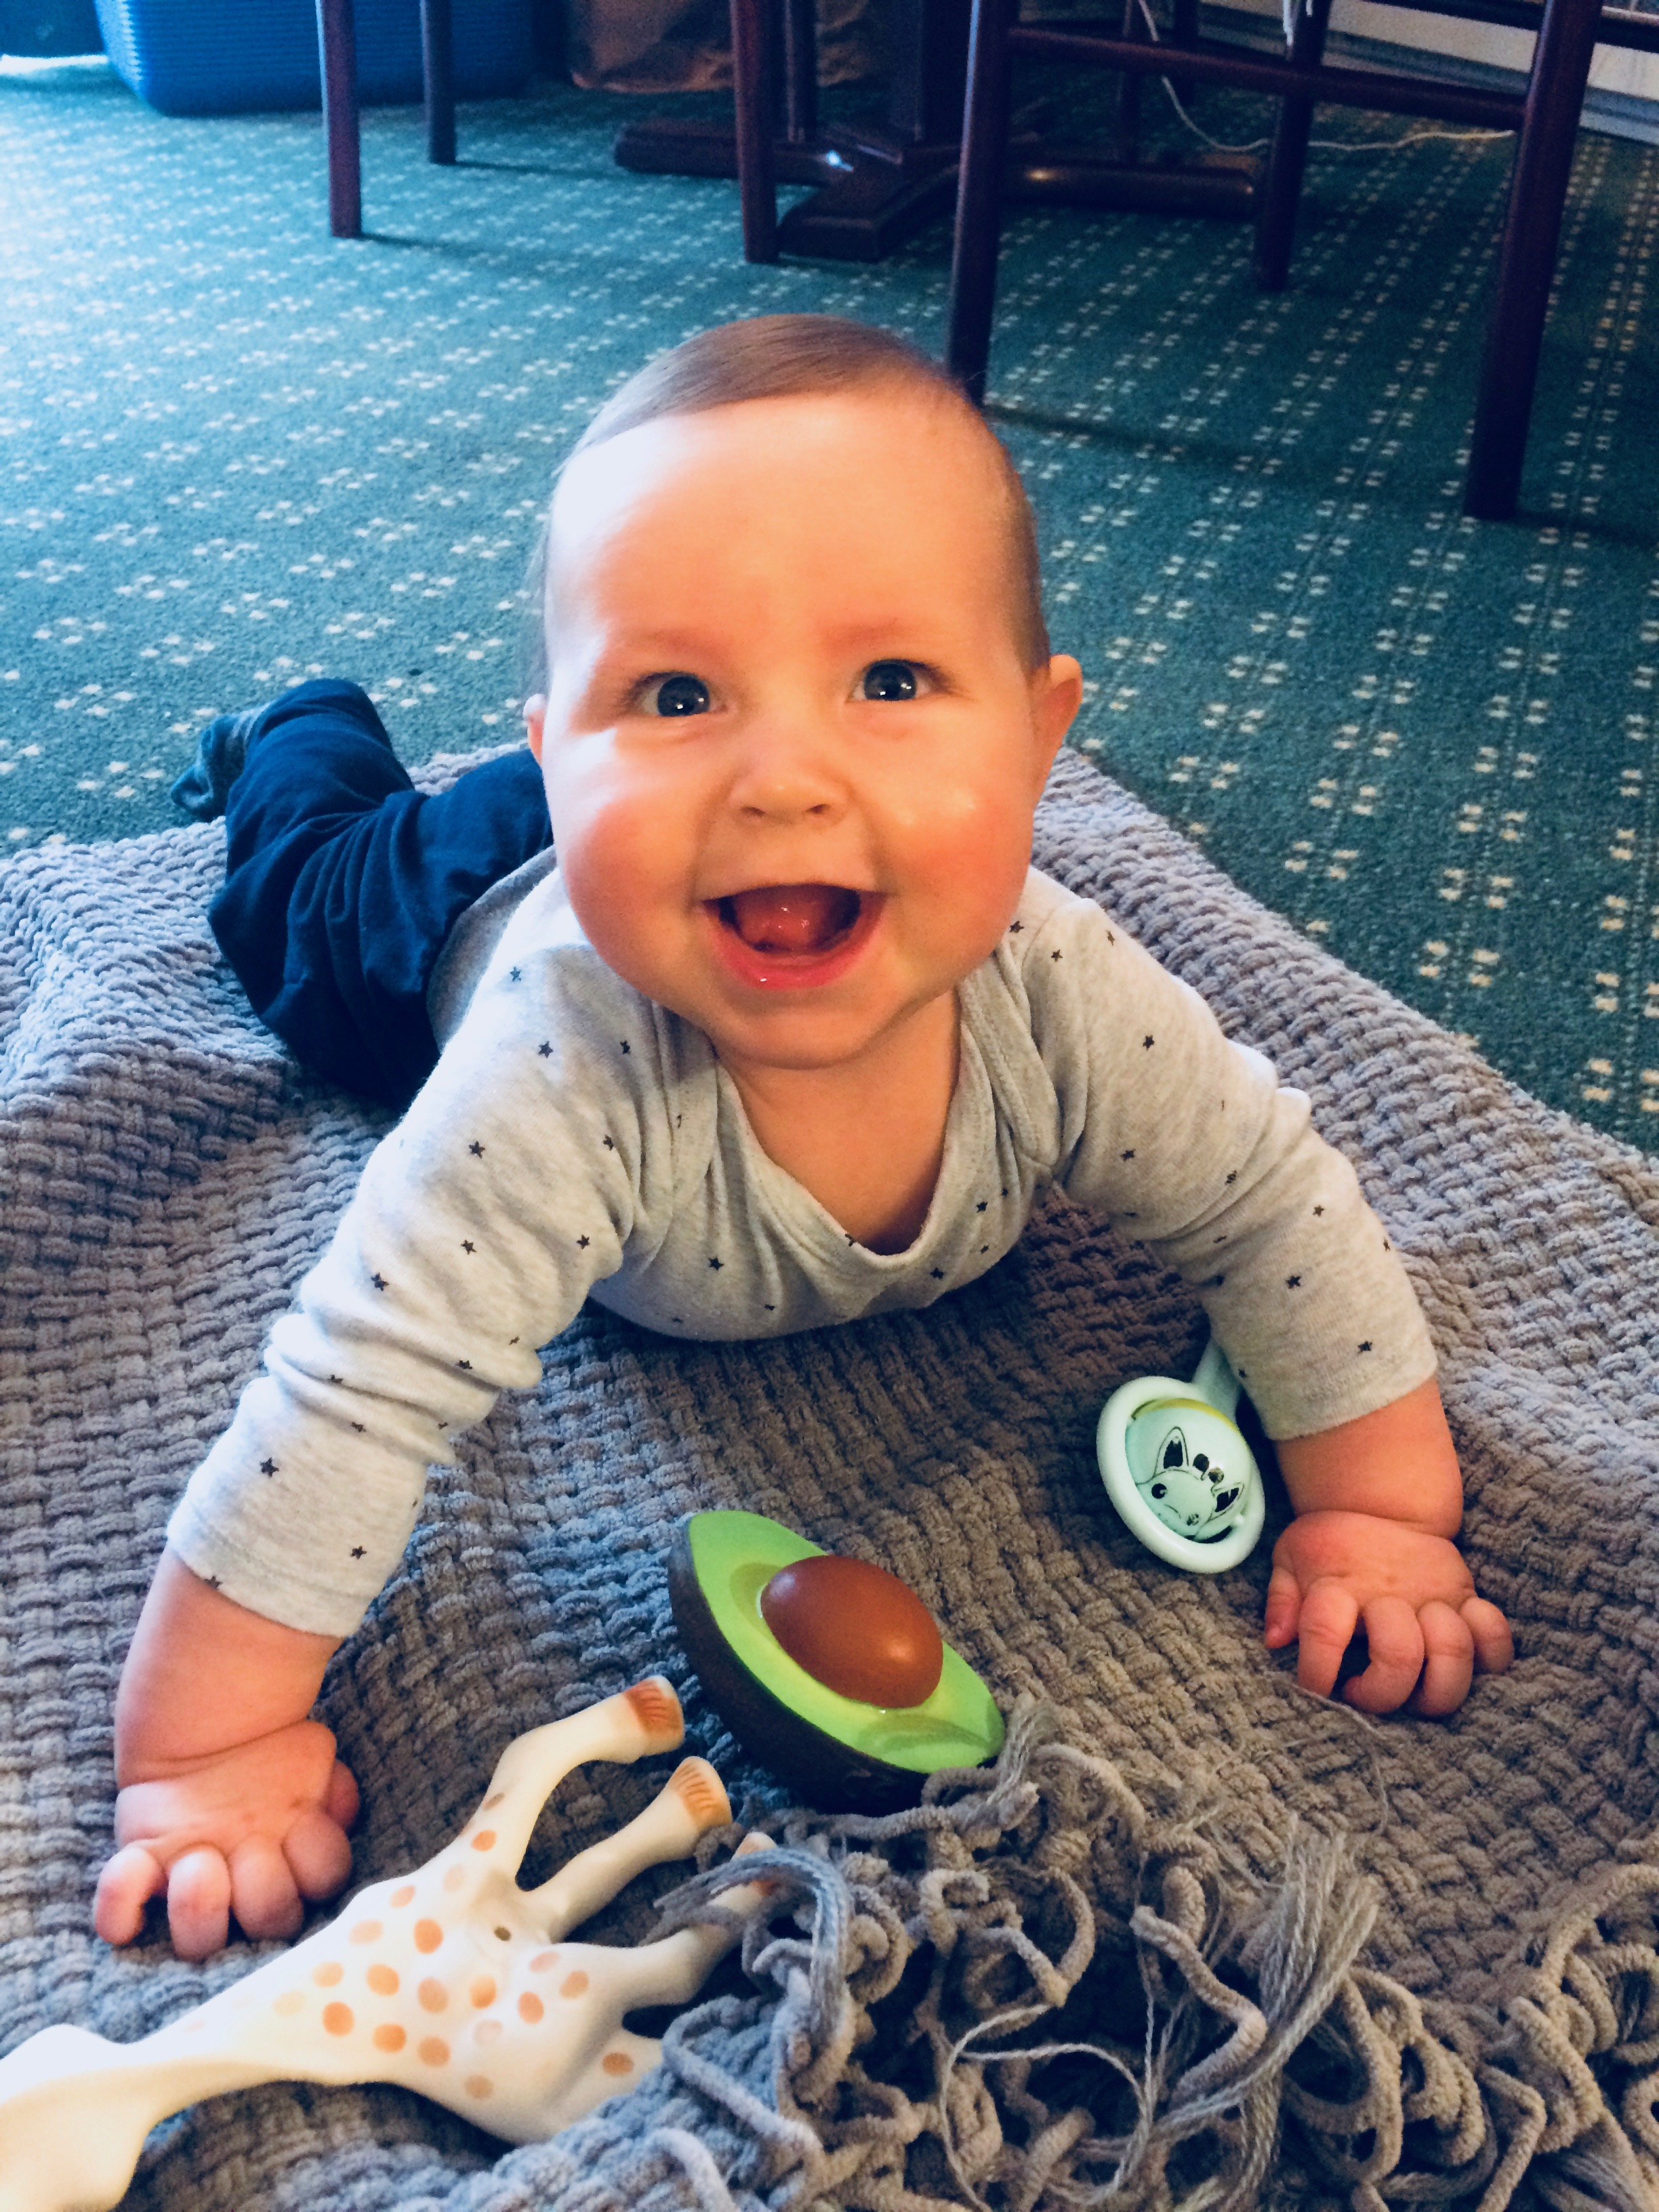 Benji enjoying some tummy time in one of the hotels. At least somebody was having a good time!